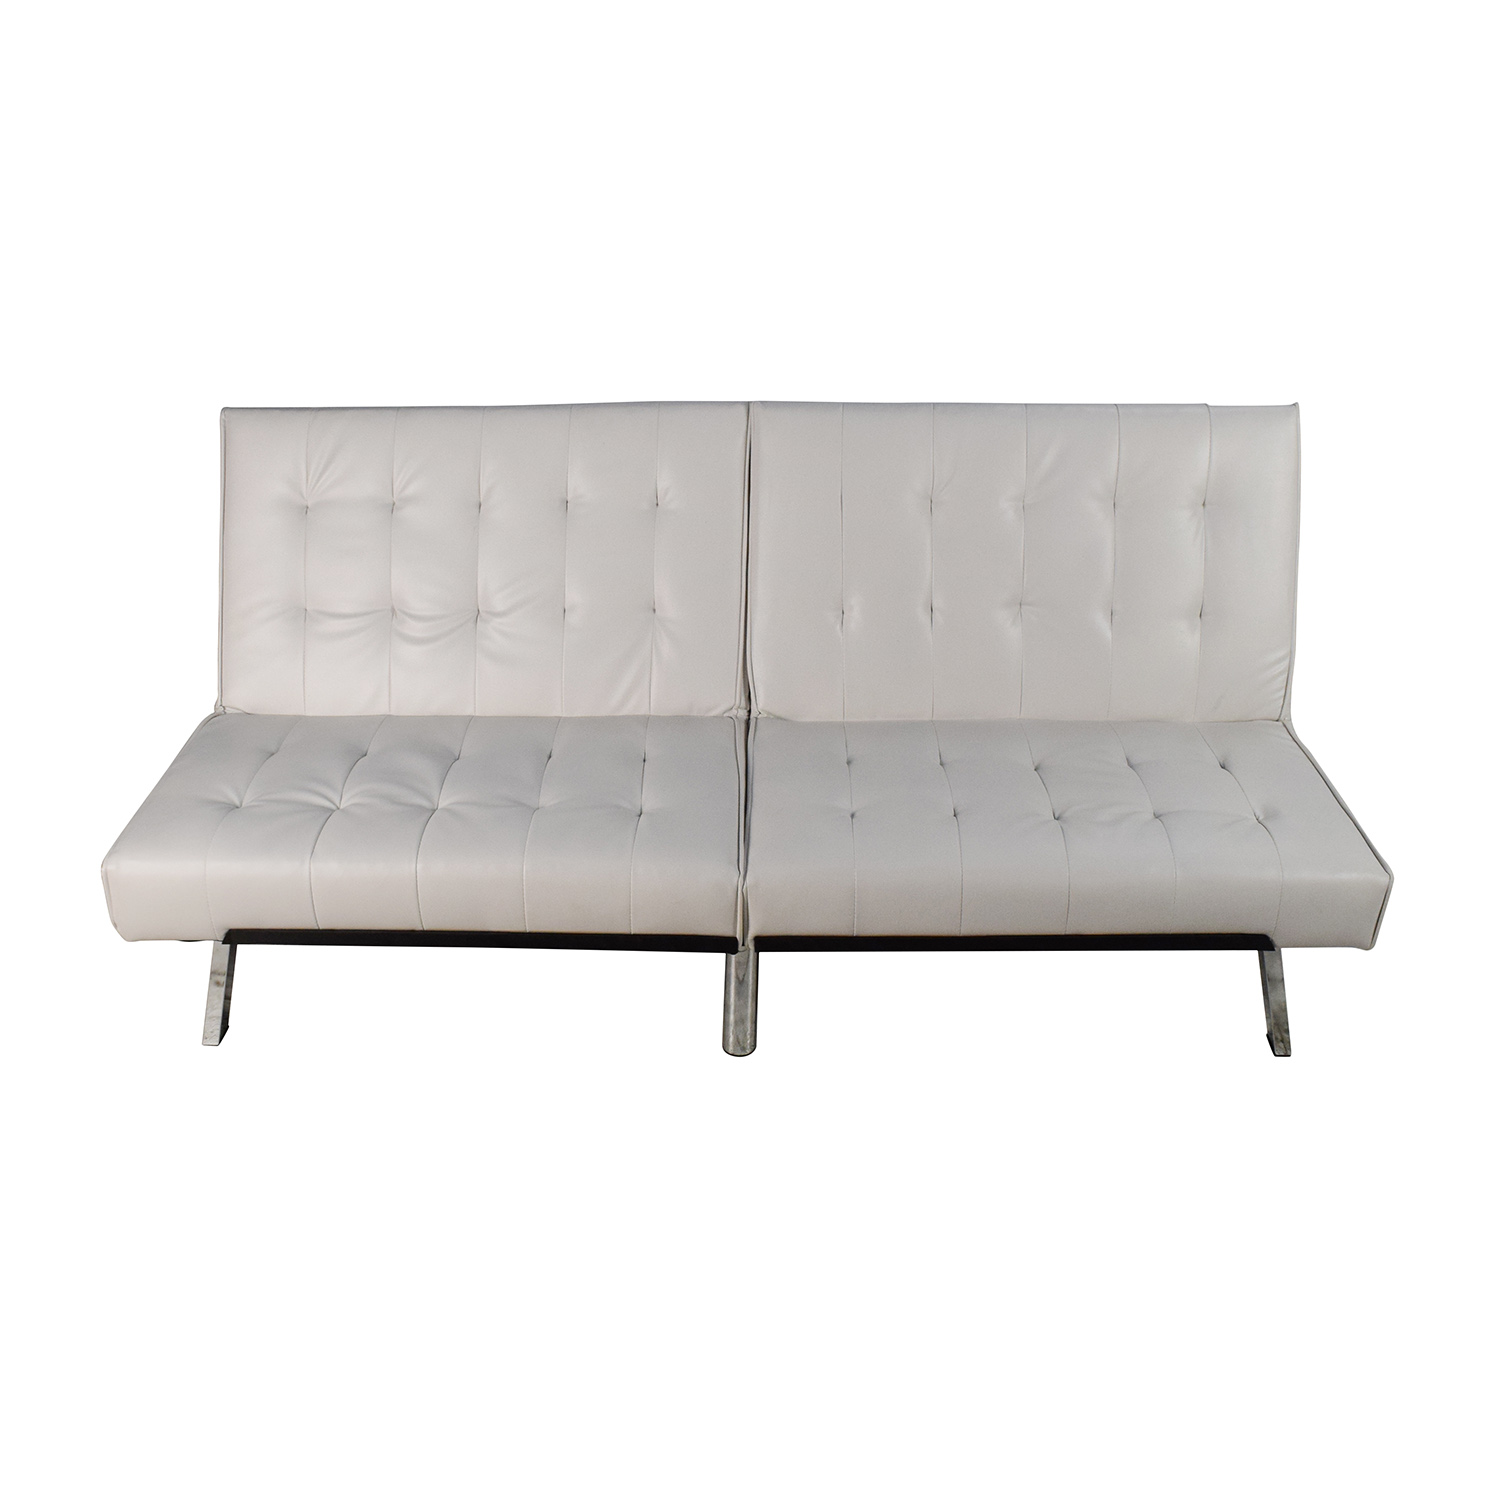 OFF DHP DHP Emily Convertible Faux Leather Futon Sofas